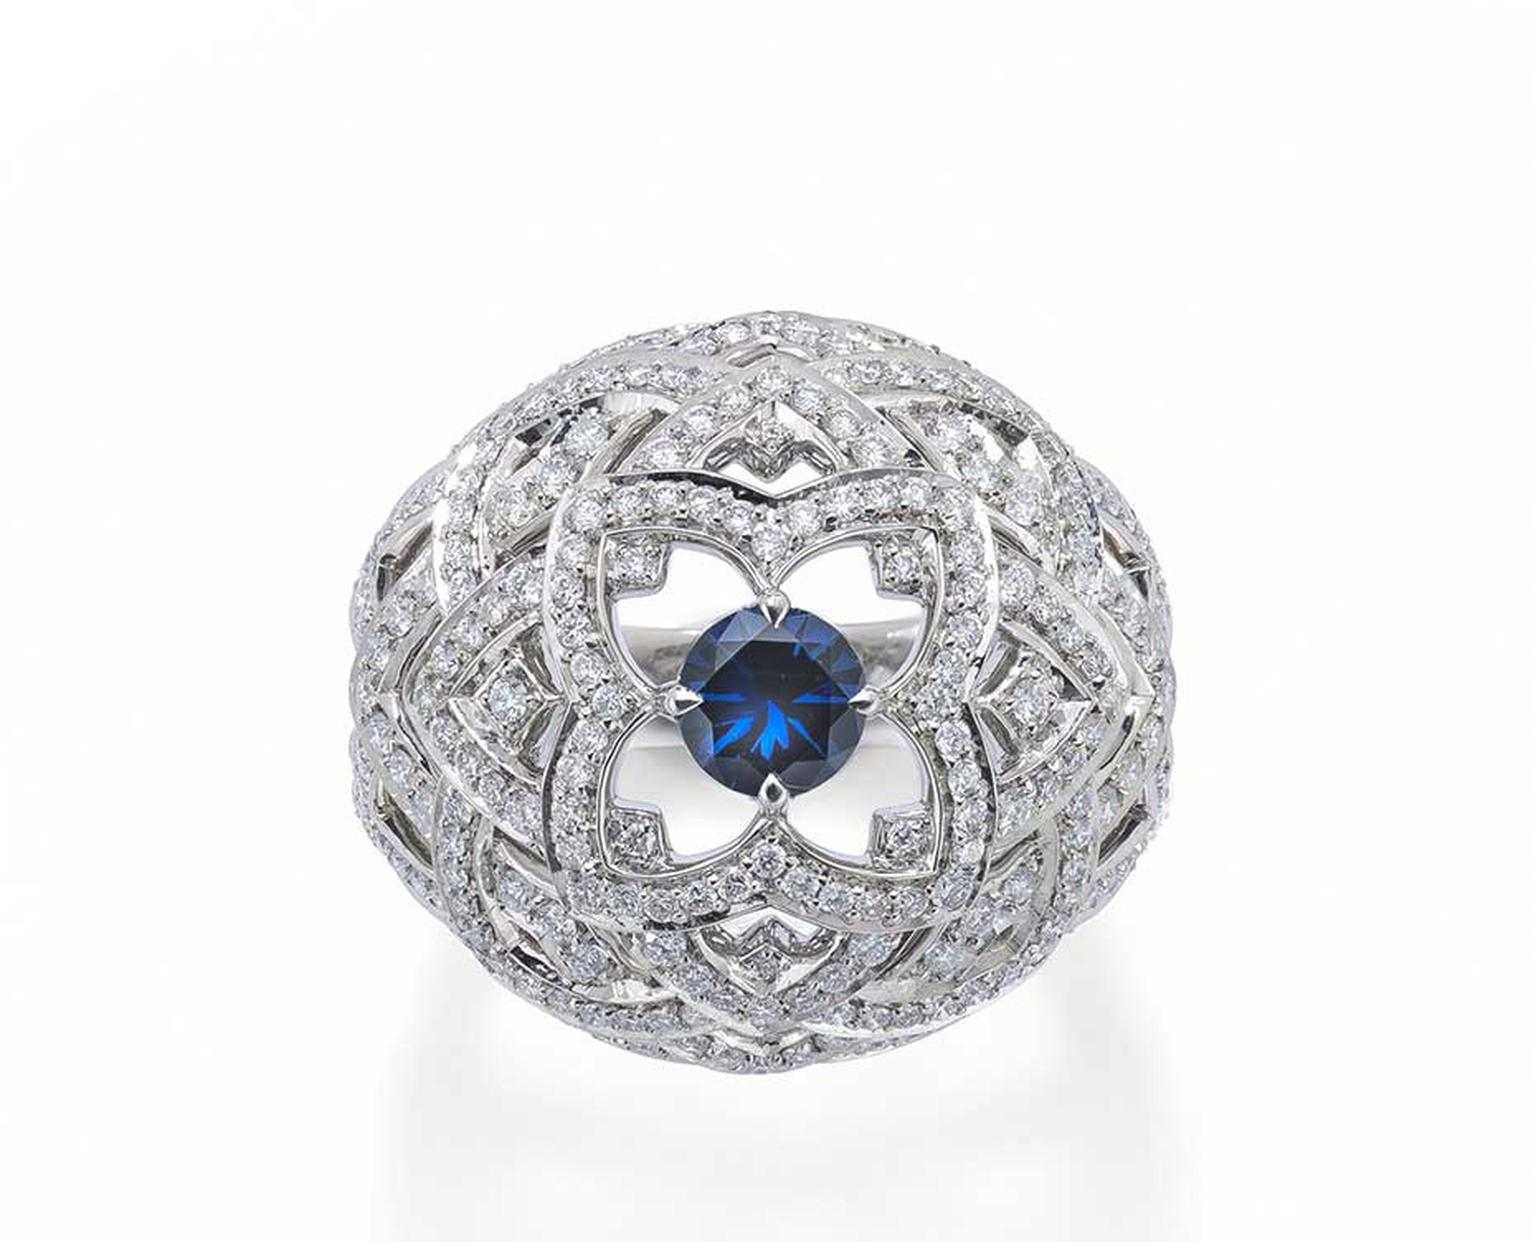 Mappin & Webb Floresco collection high jewellery ring in white gold, set with 250 diamonds and a vibrant brilliant-cut blue sapphire